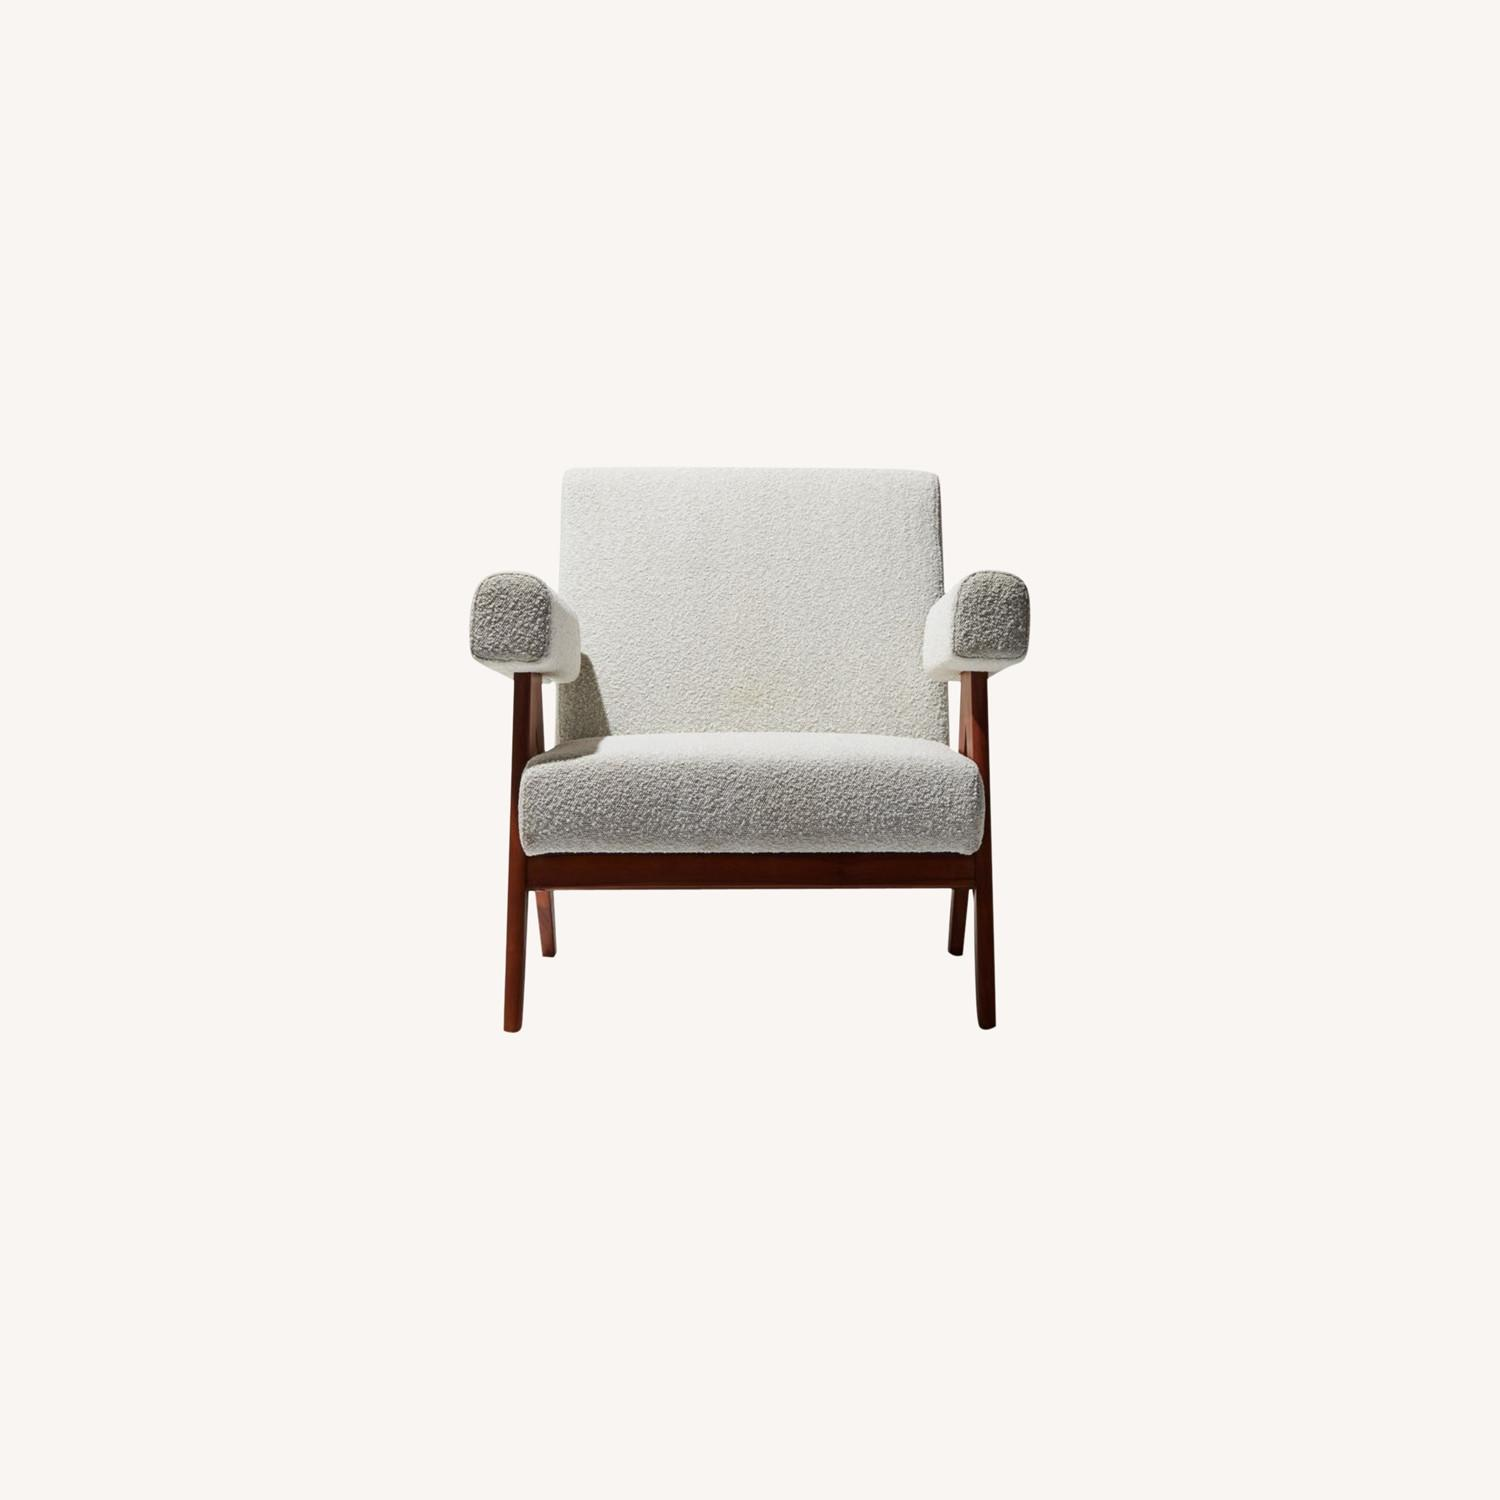 Industry West Cream Boucle Compass Chair - image-0